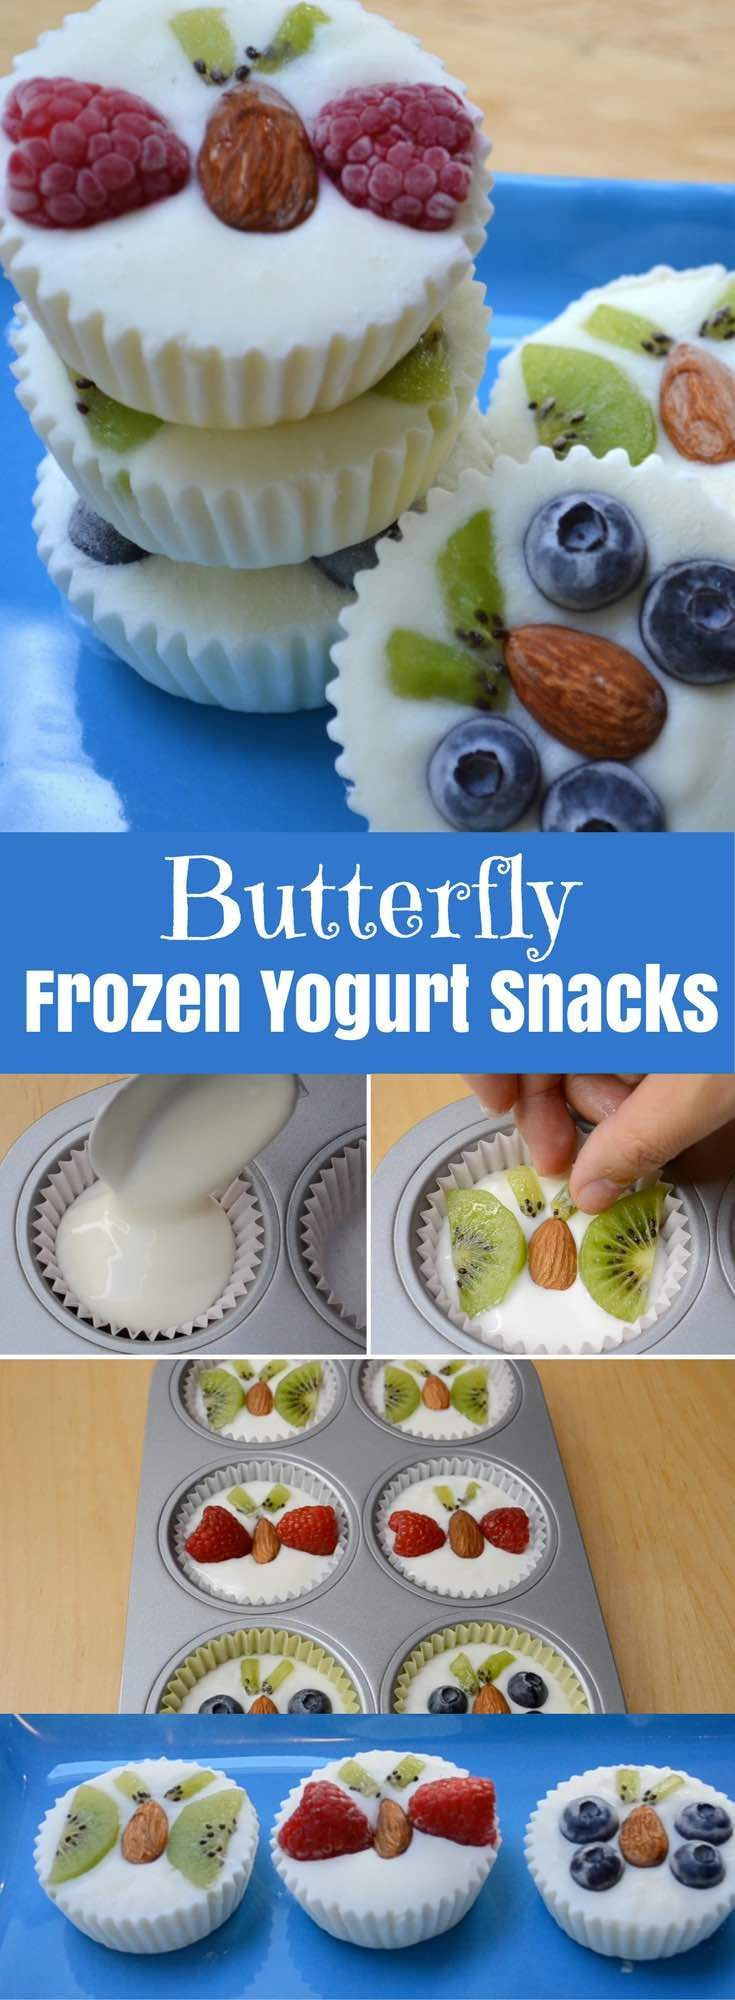 Healthy Fruity Frozen Yogurt Snacks – An easy and refreshing dessert that's good for you. A fun way to enjoy FroYo! These creamy frozen yogurt bites come with fruits shaped into butterflies. All you need is your favorite yogurt, some fruits and almonds. S